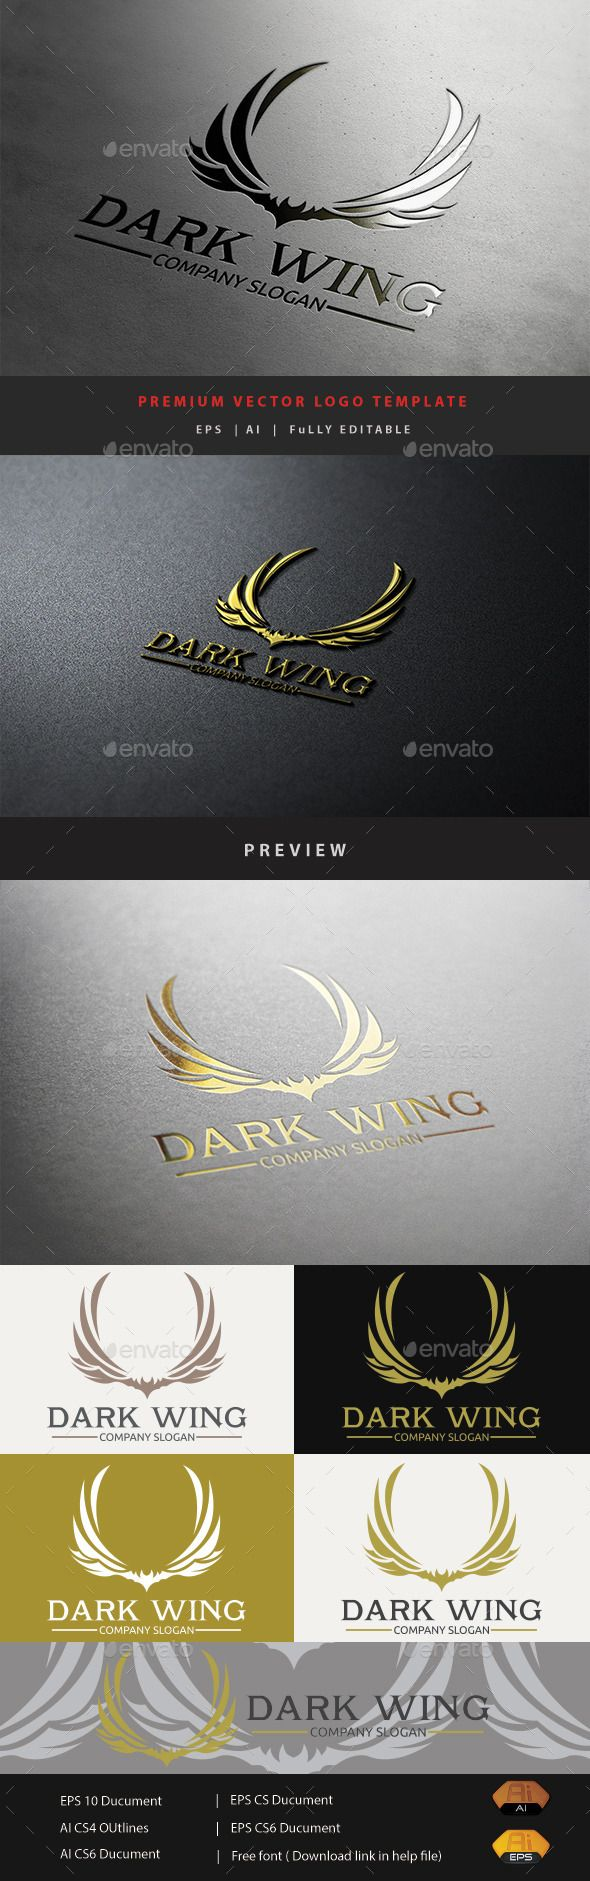 best ideas about wings logo logo inspiration dark wing